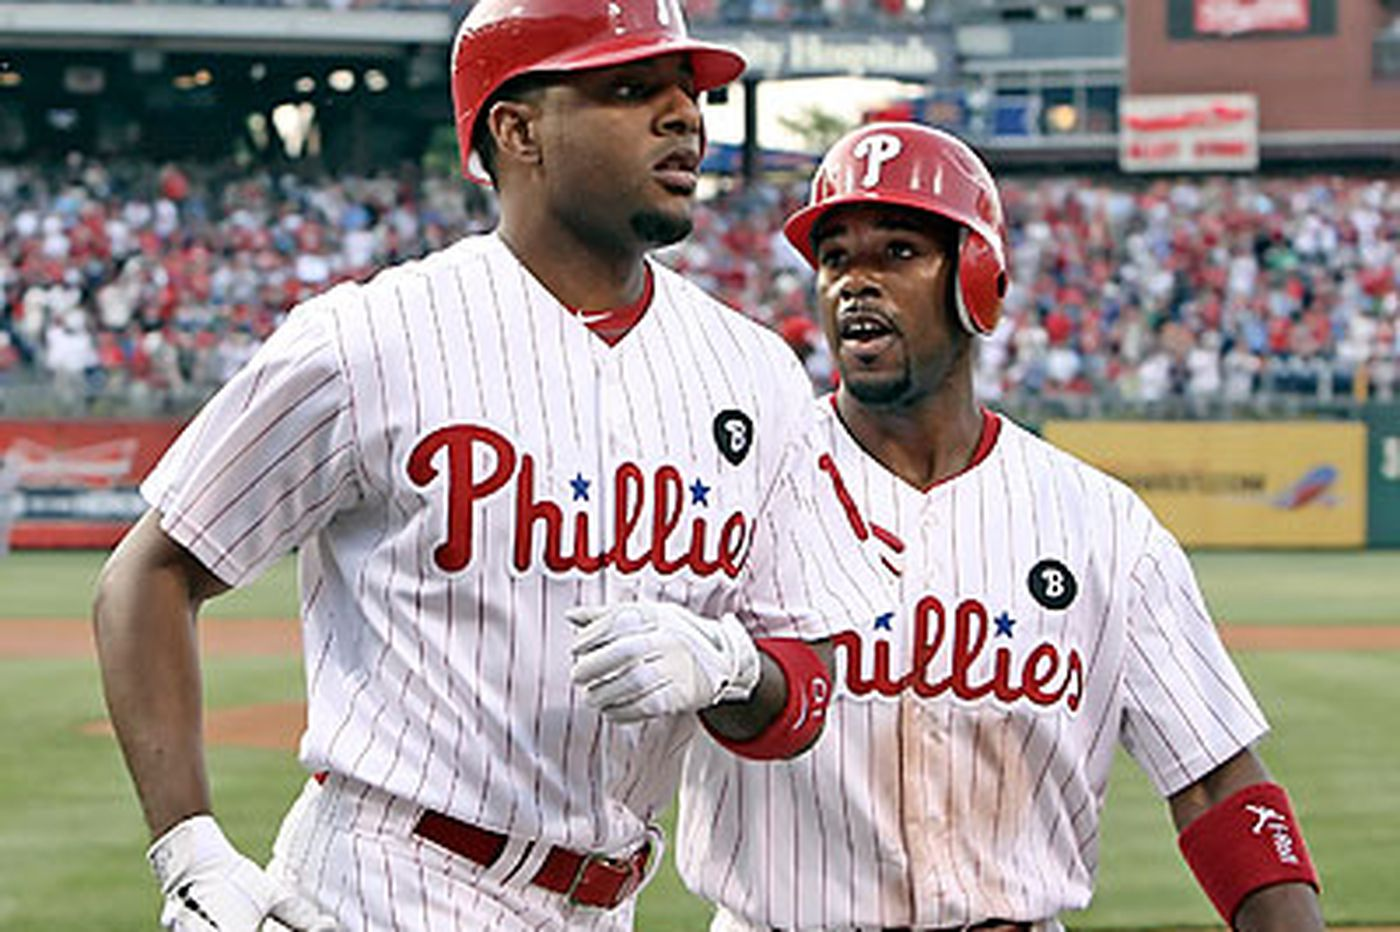 For Phillies, touchy decision comes with Victorino's return